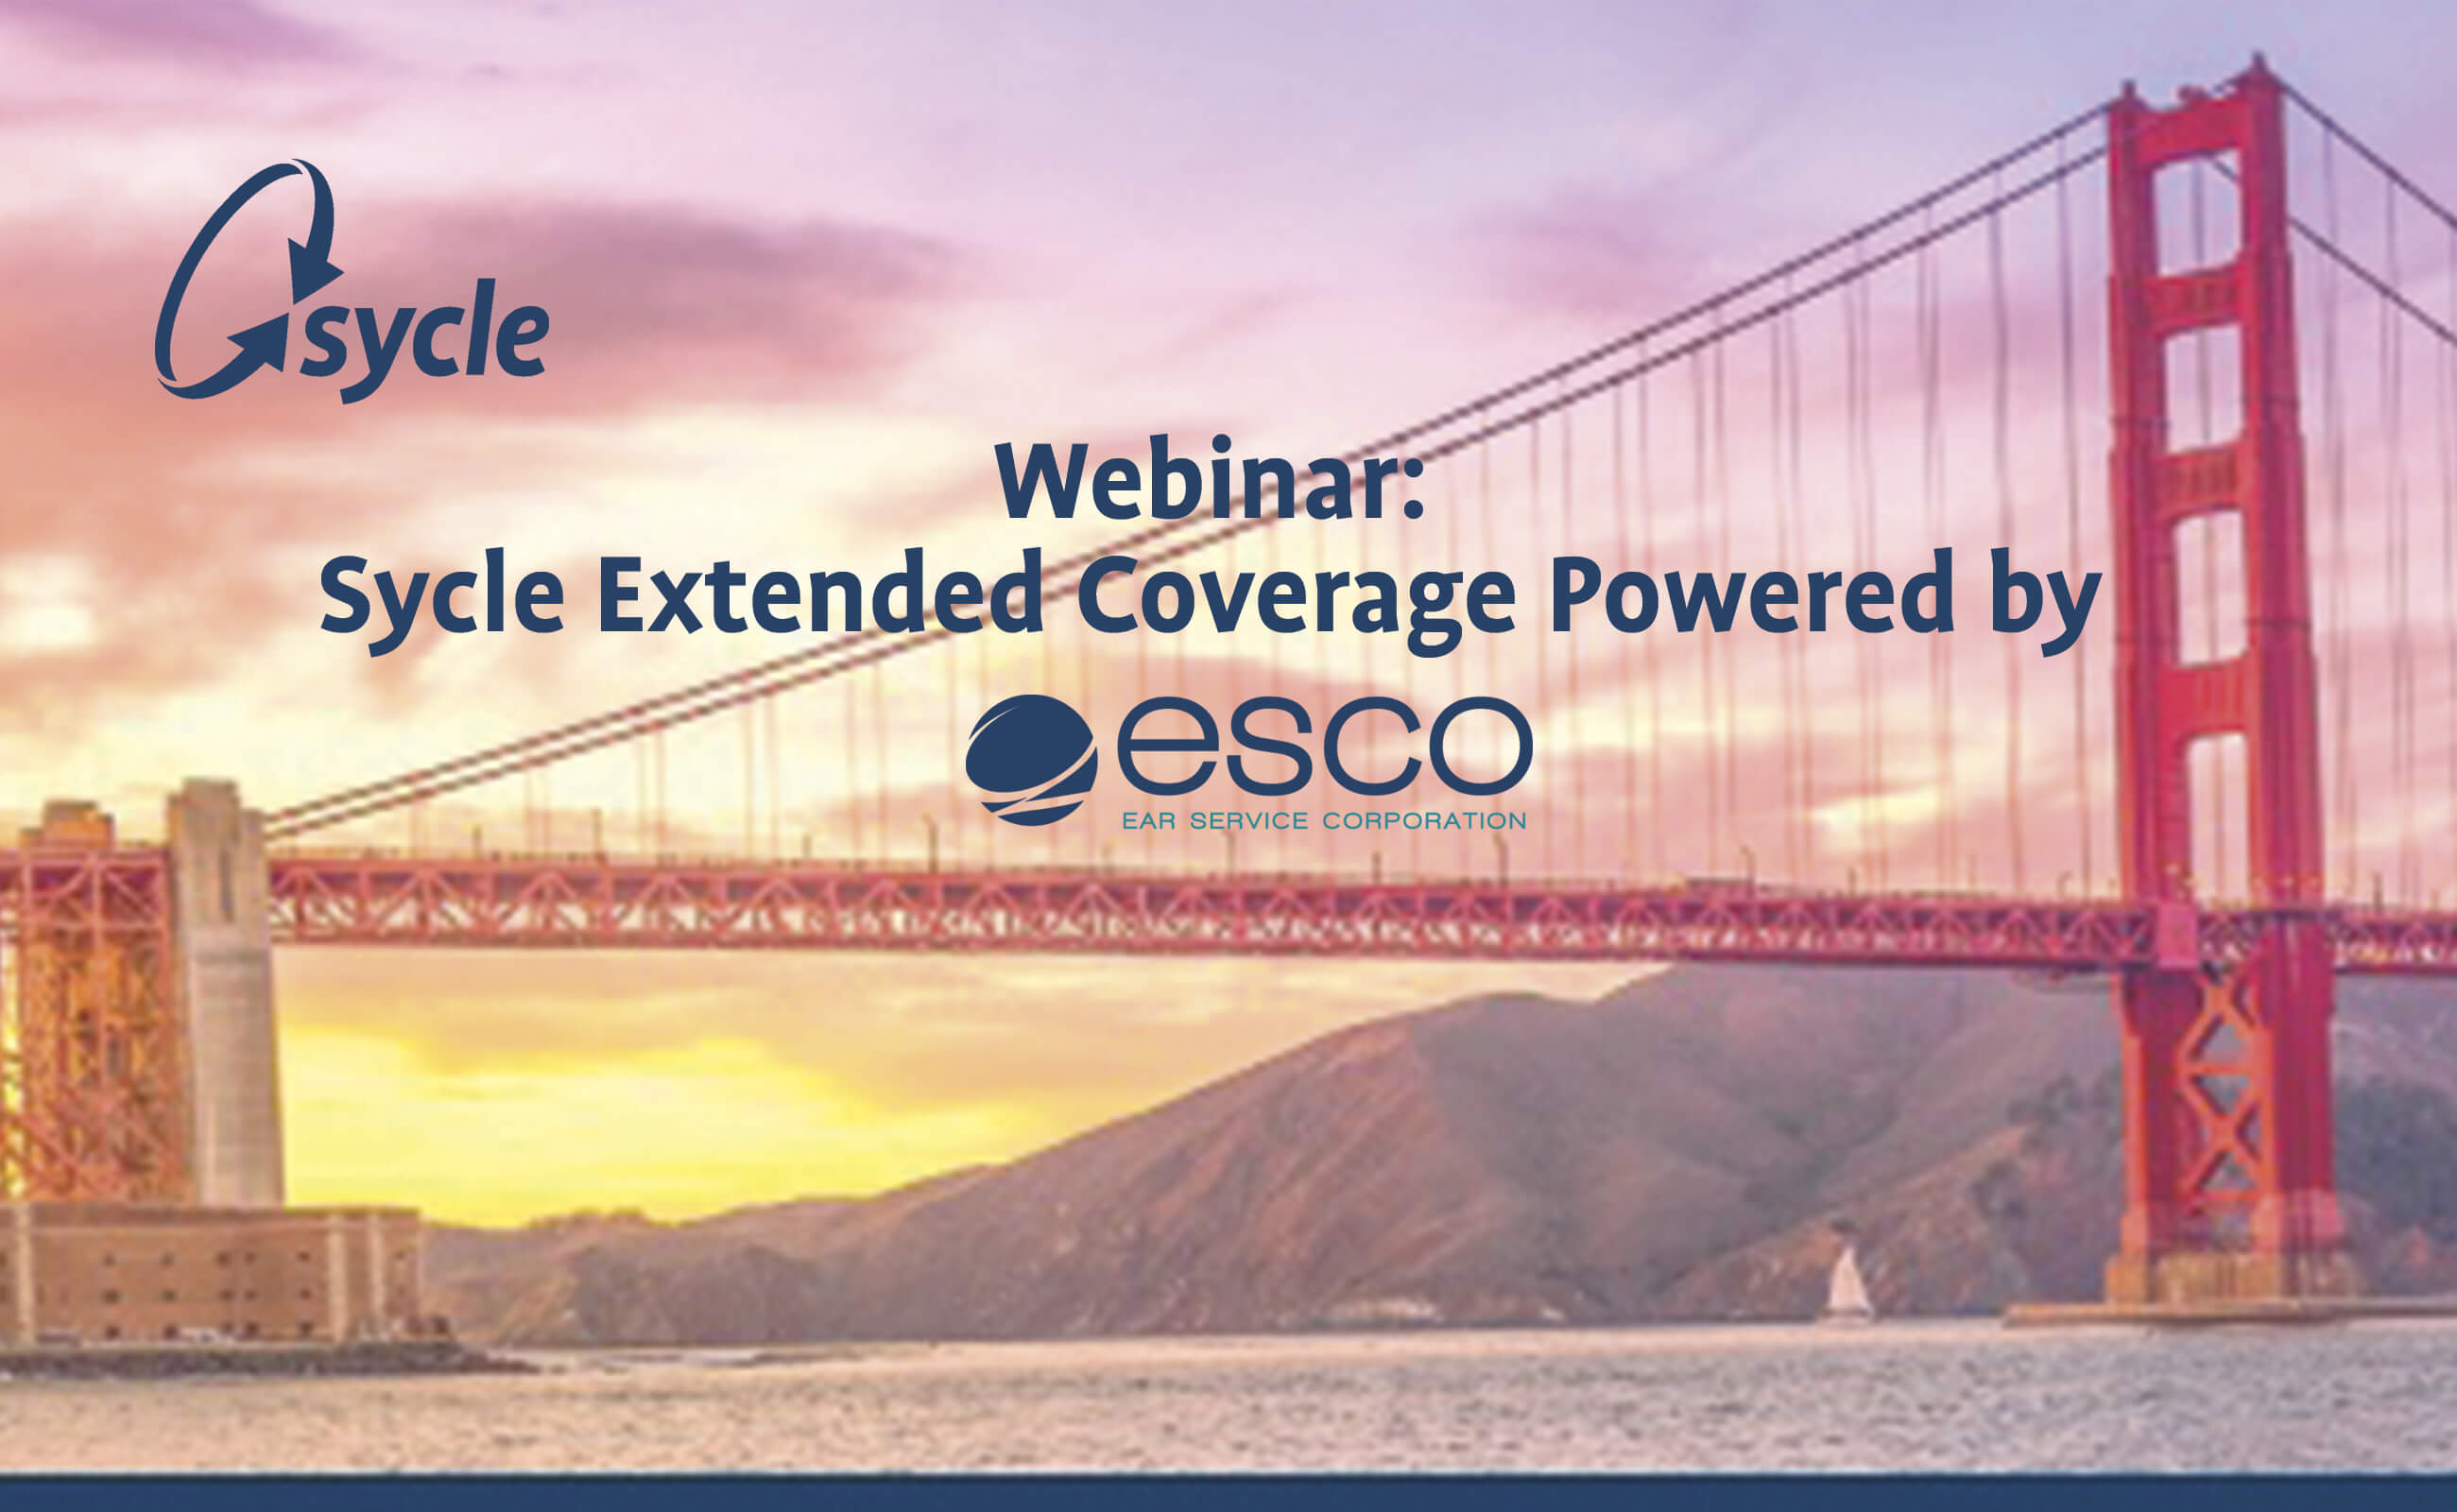 Webinar Recording: Sycle Extended Coverage, Powered by ESCO image